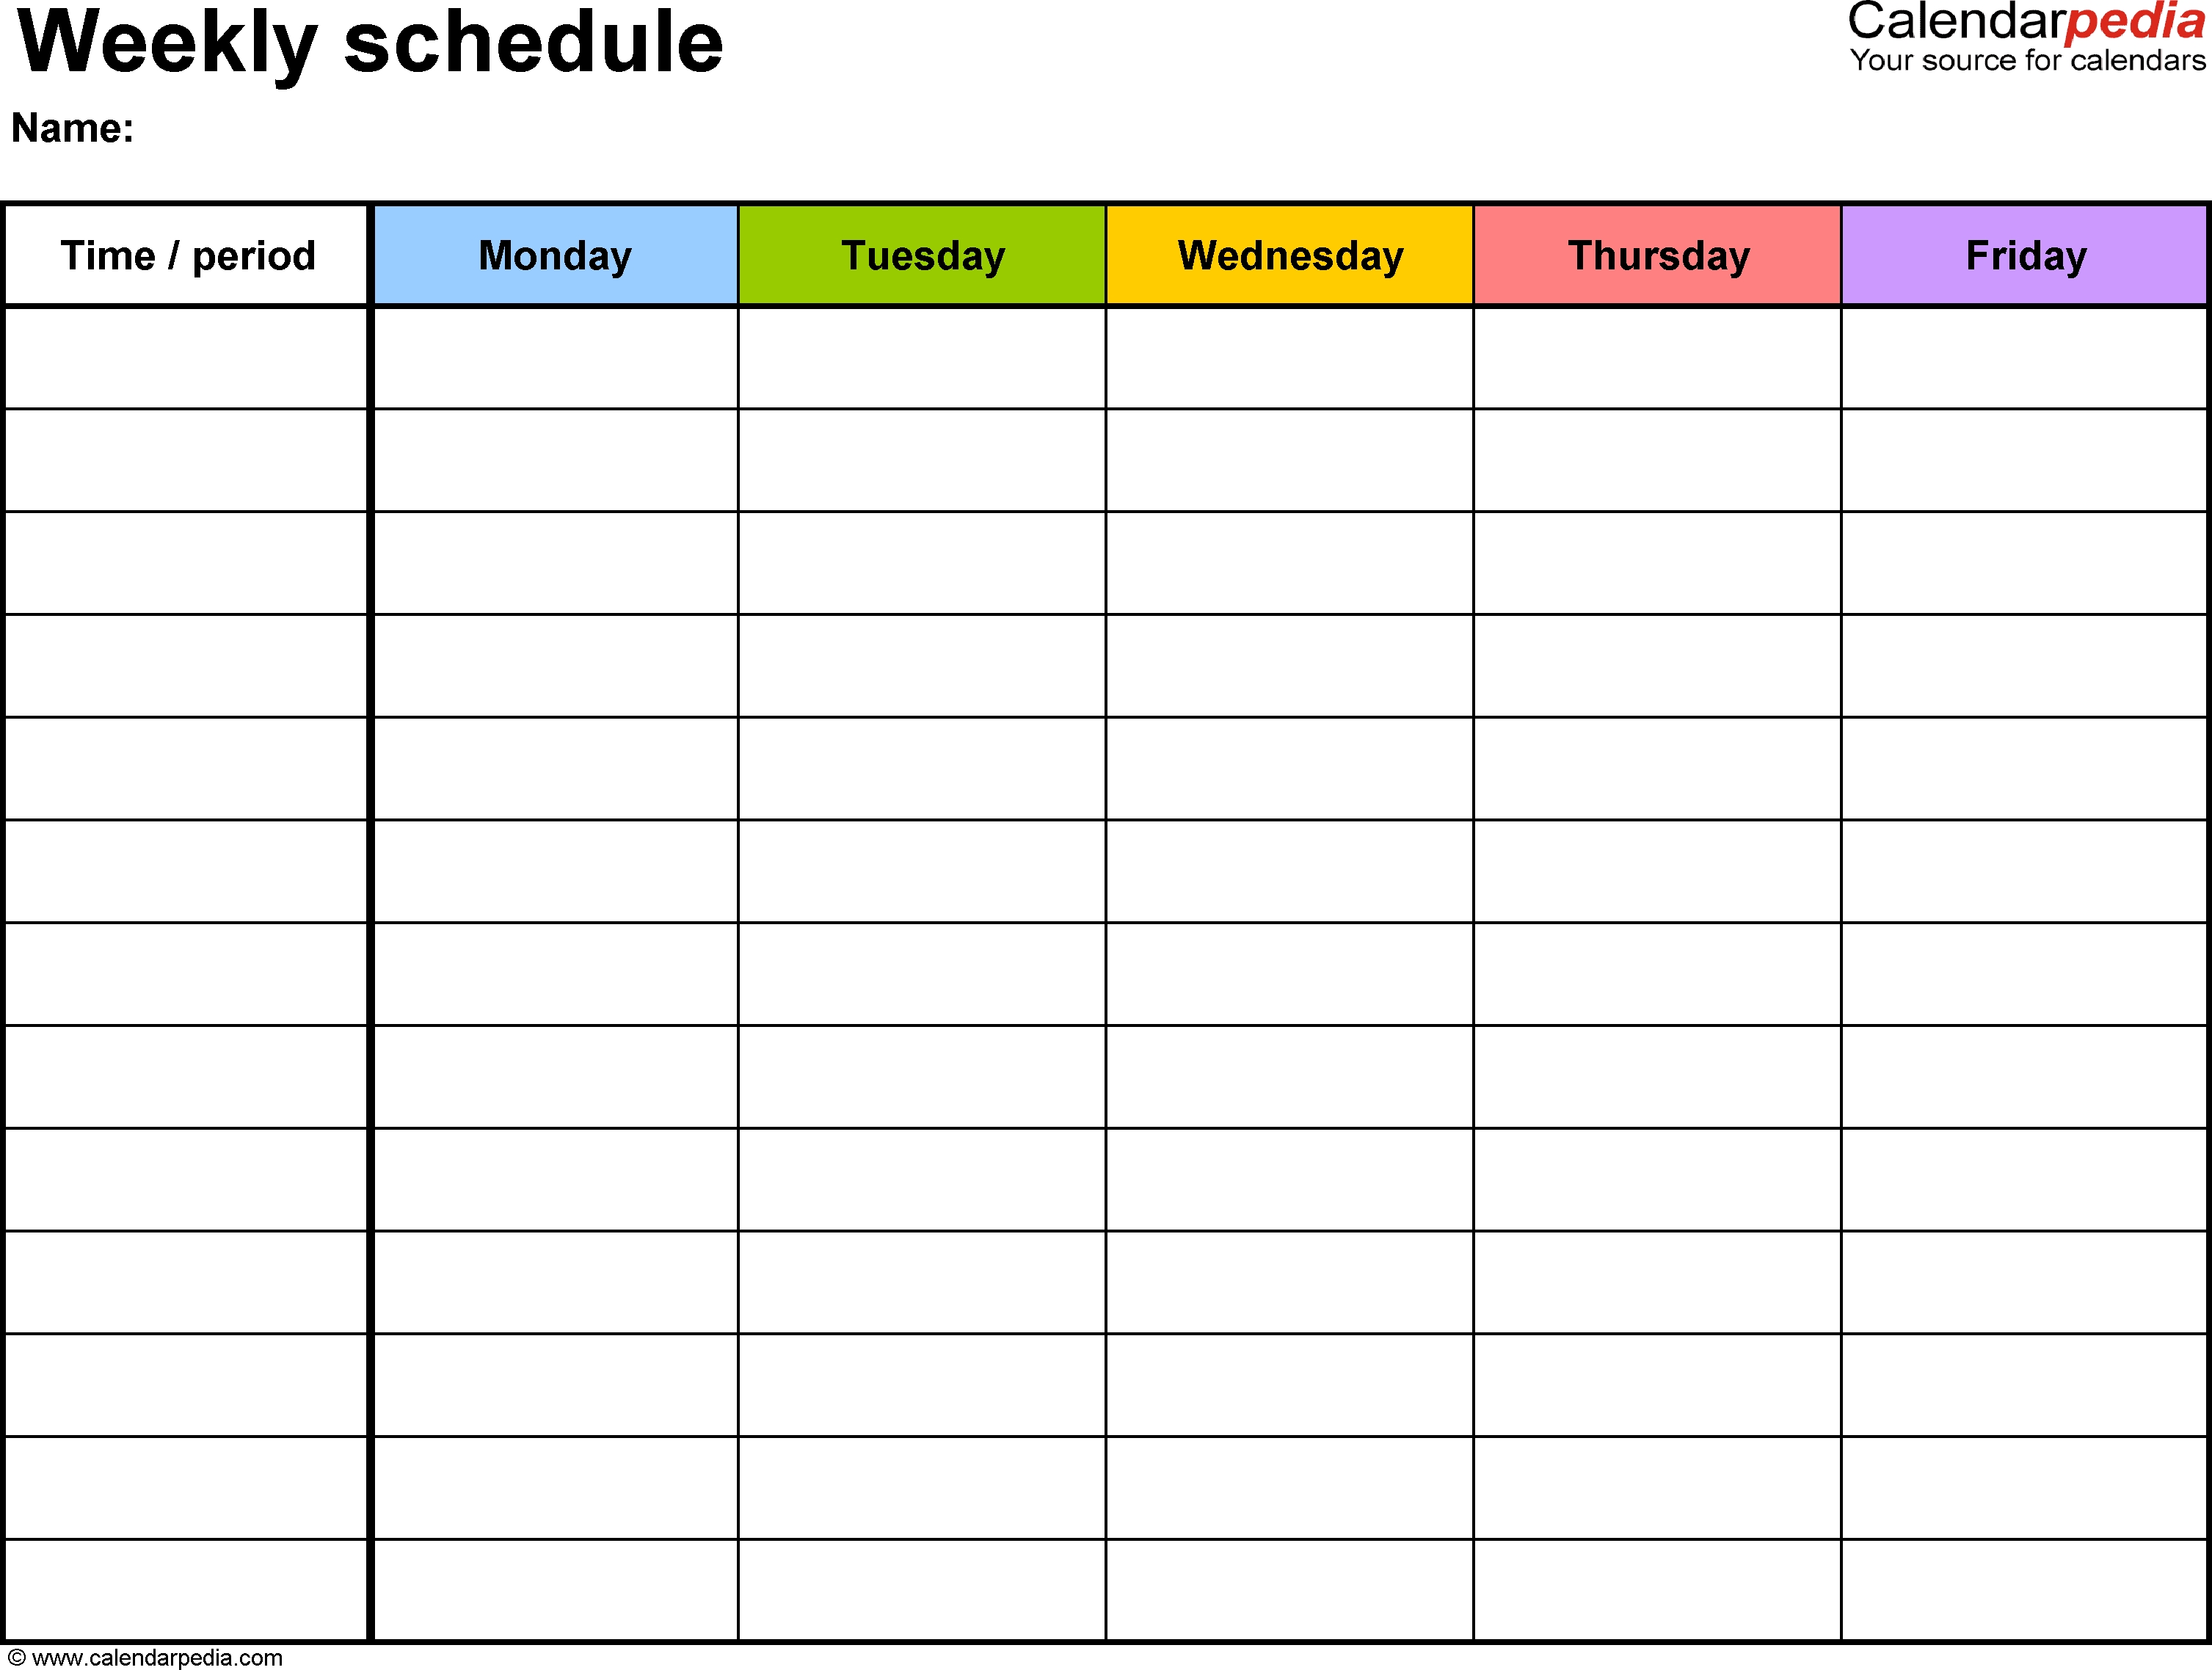 Free Weekly Schedule Templates For Pdf - 18 Templates-Blank Calendar No Dates